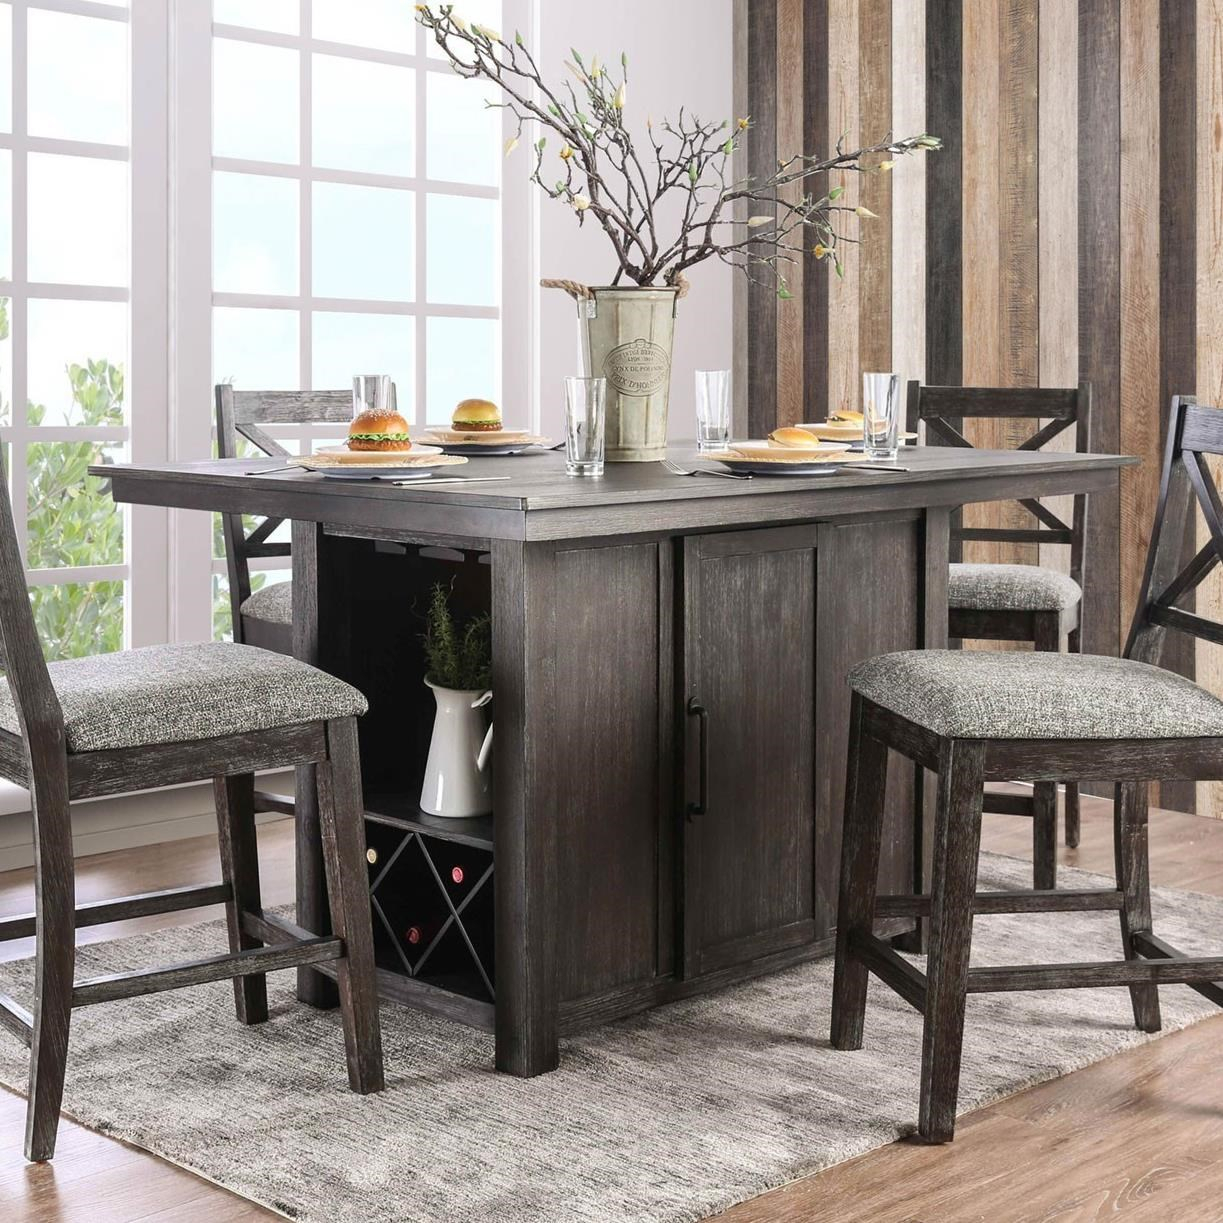 Furniture Of America – Foa Faulkton Cm3391Pt Table Counter Intended For Most Current Nakano Counter Height Pedestal Dining Tables (View 14 of 15)